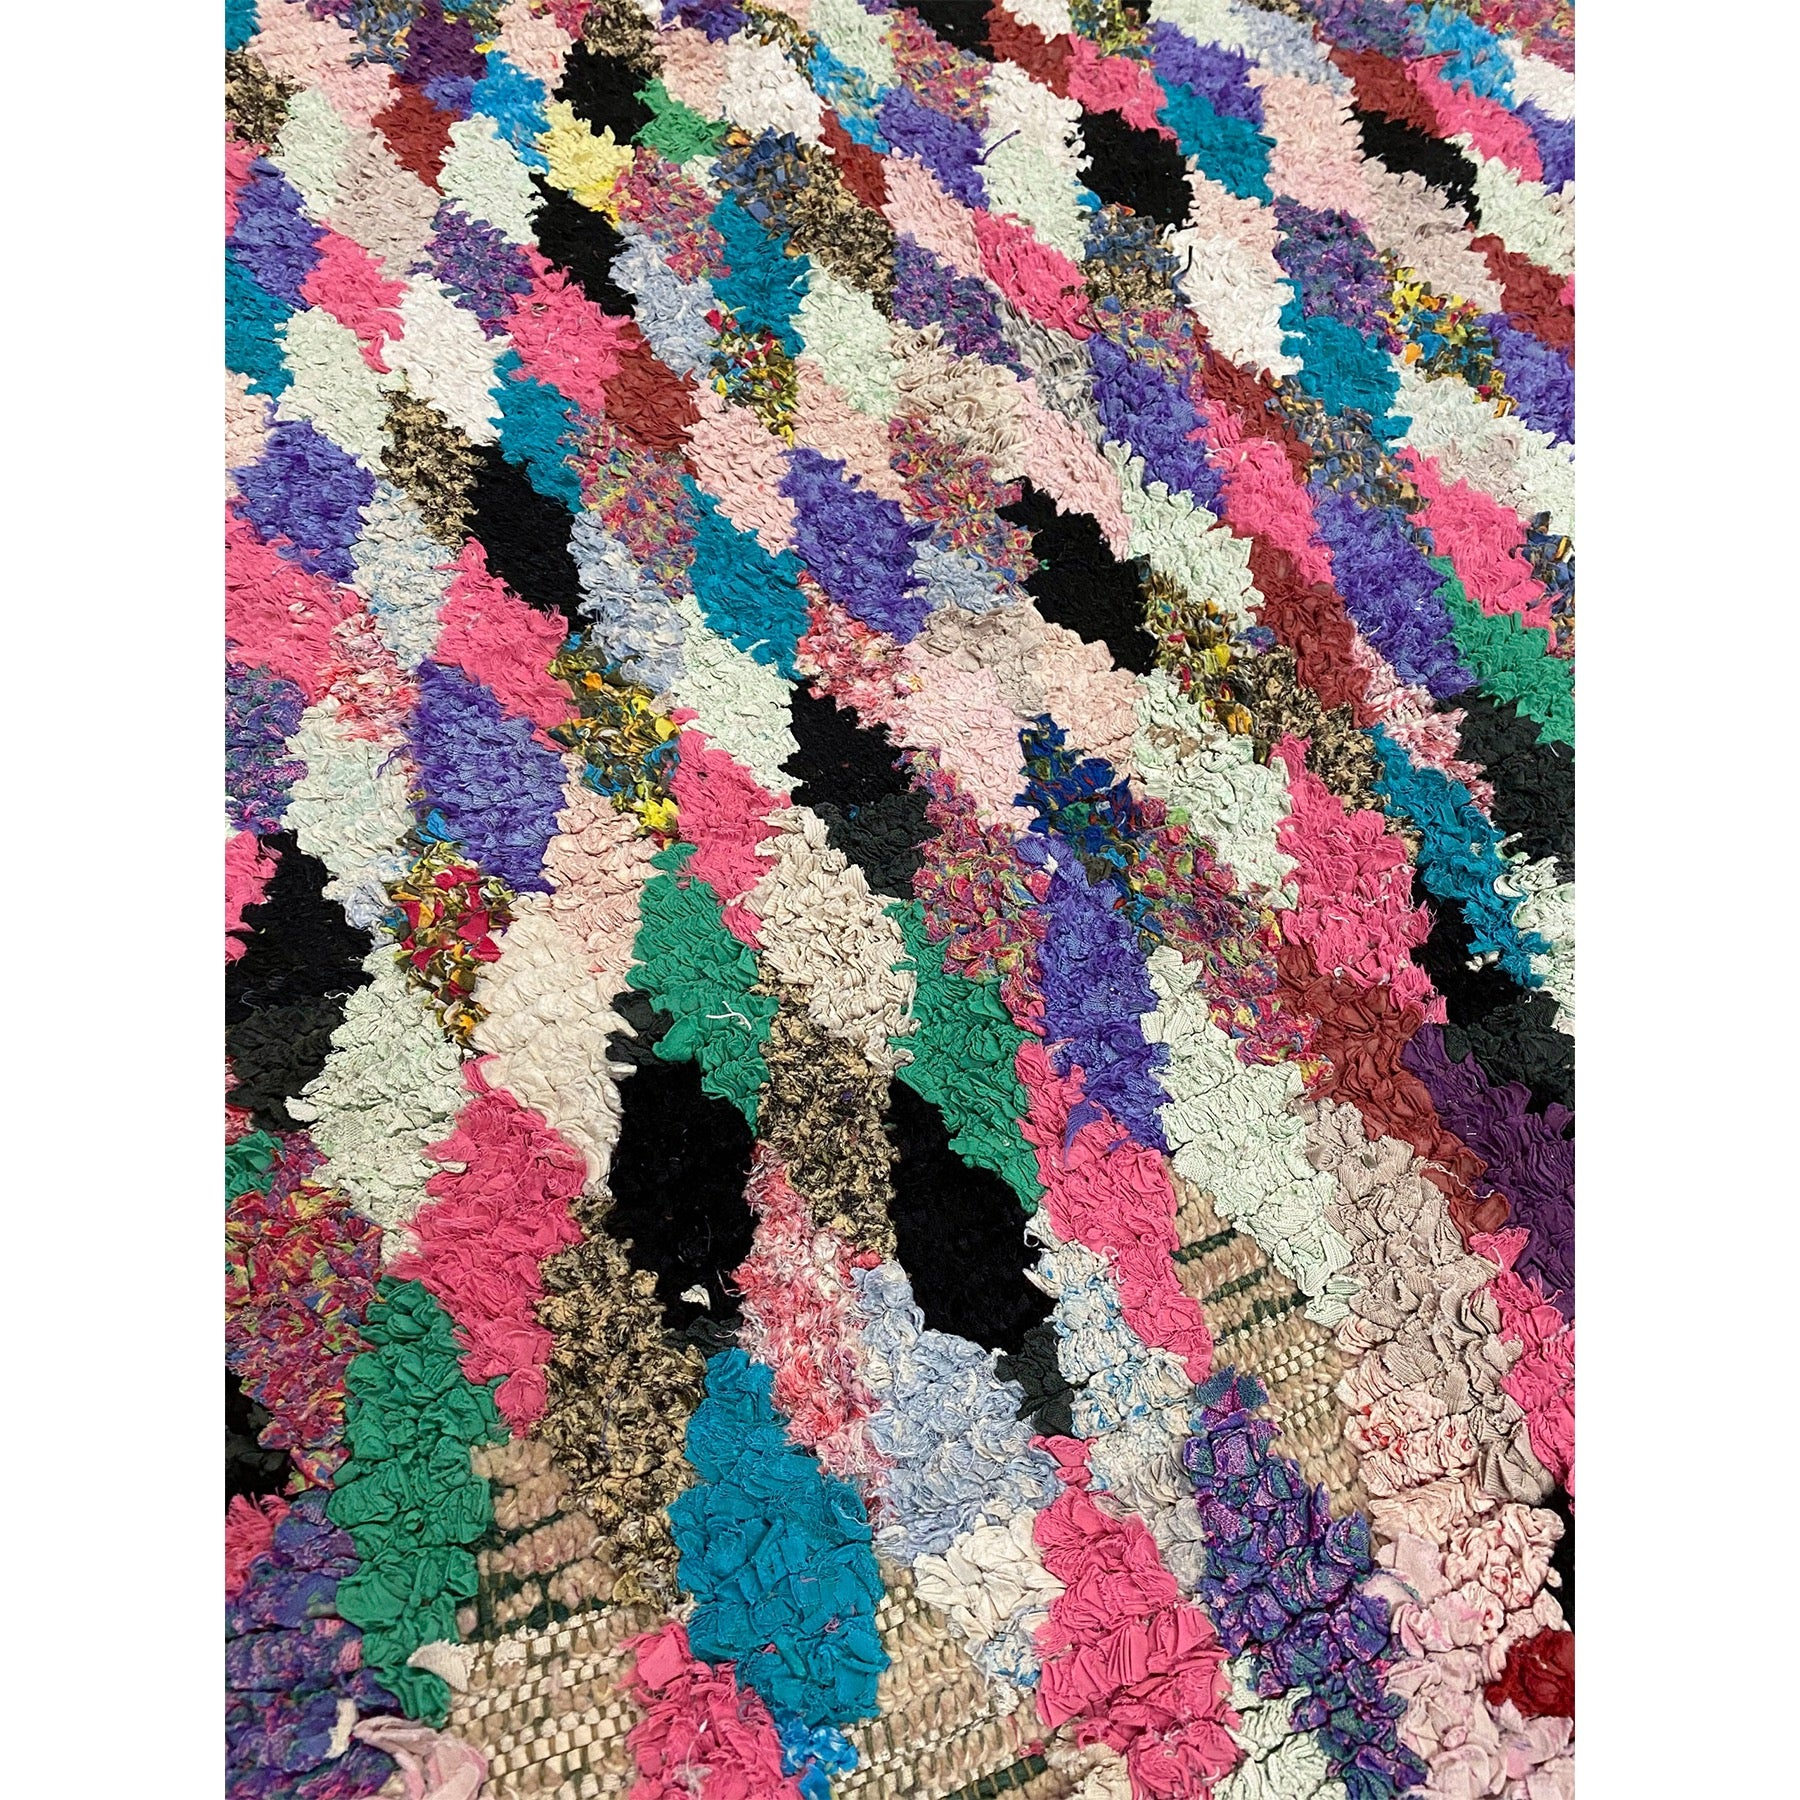 Moroccan rag rug with colorful diamond pattern - Kantara | Moroccan Rugs